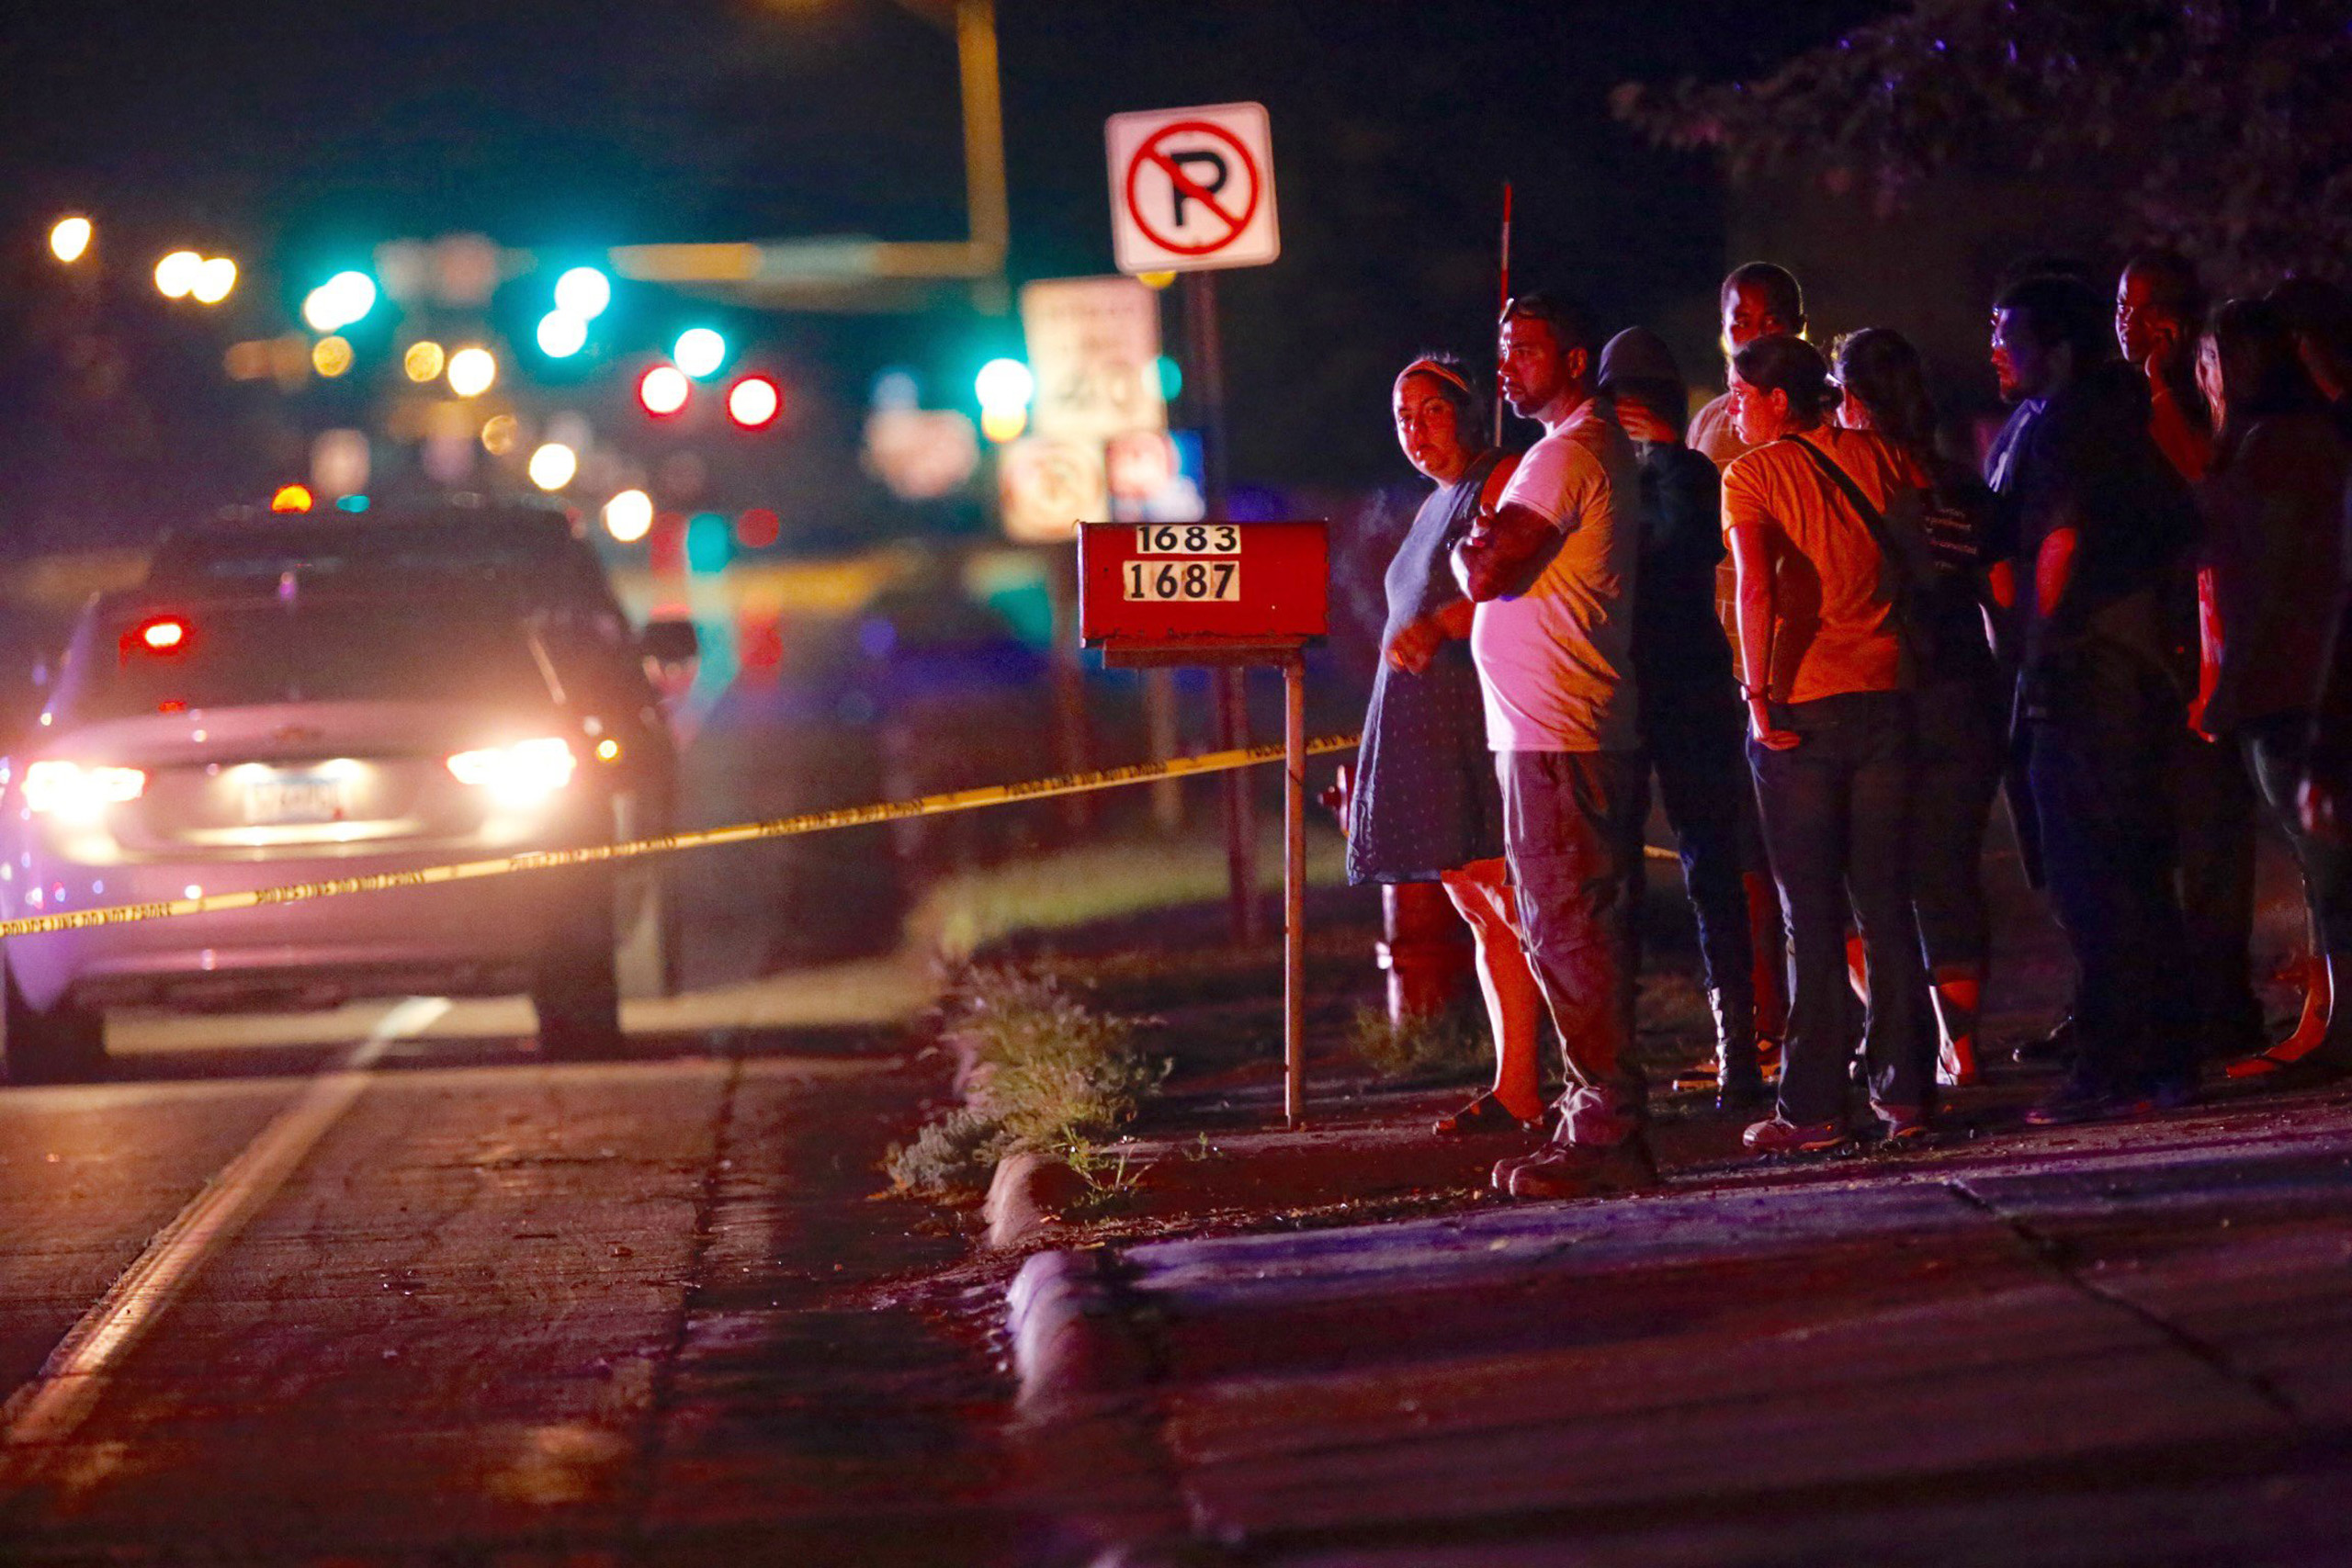 A crowd gathers at the scene of the shooting of Philando Castile by a St. Anthony Police officer in Falcon Heights, Minn. on July 6, 2016.